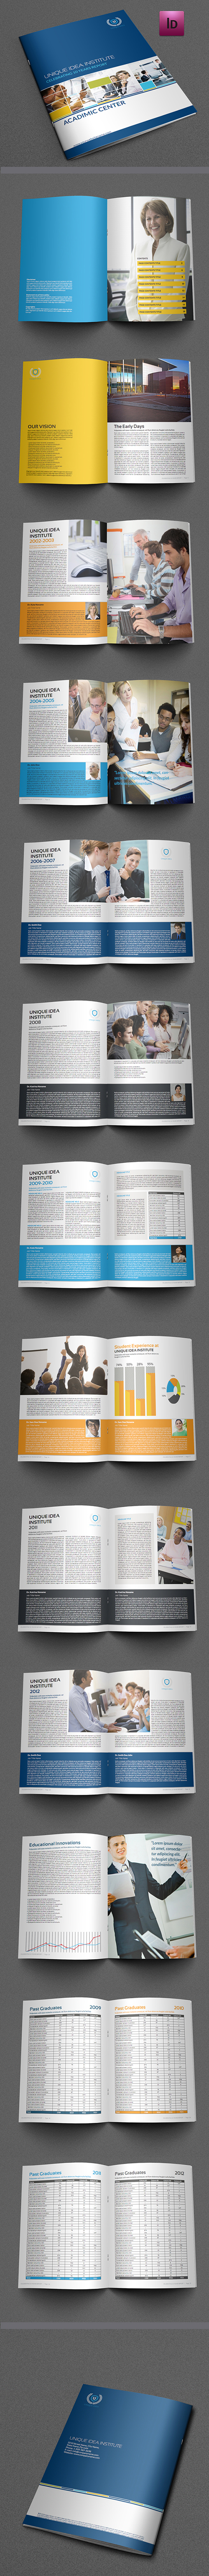 Training Company Brochure Template